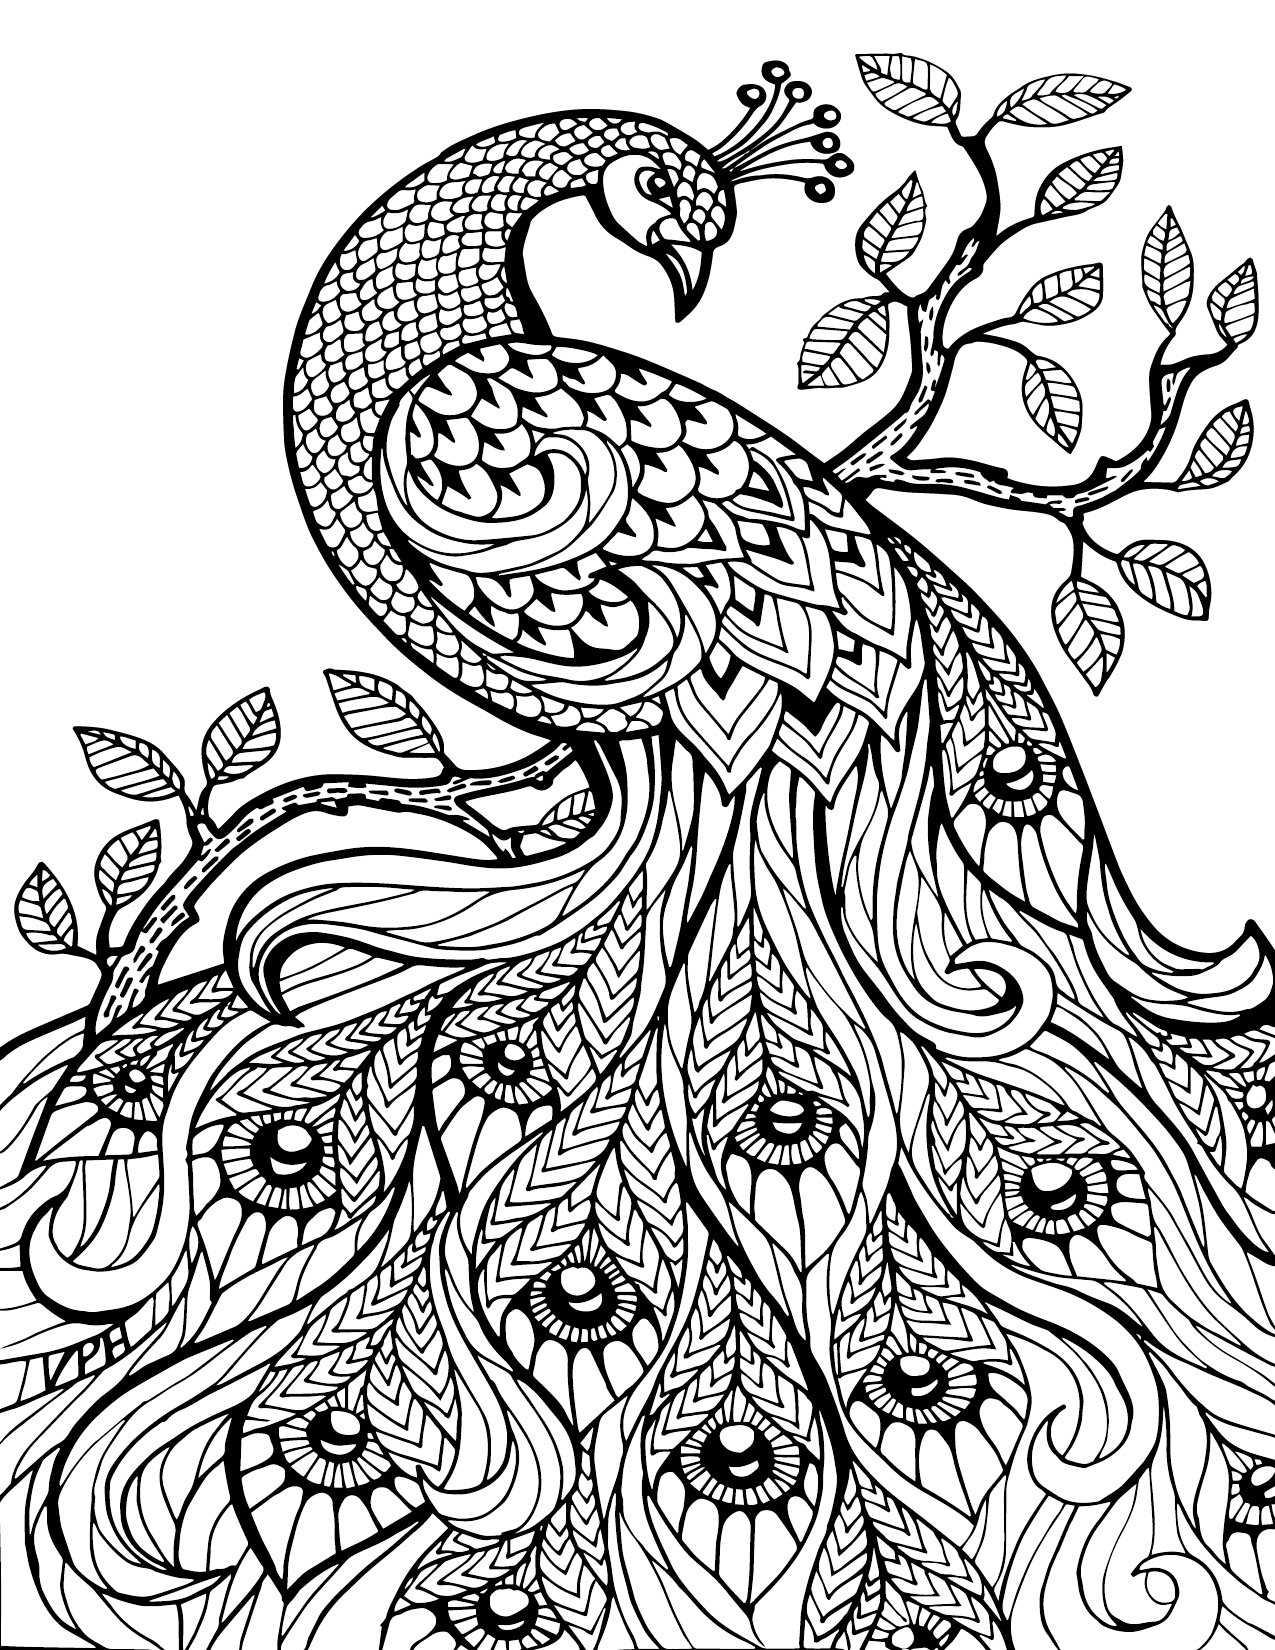 1275x1650 Adult Coloring Pages Peacock Printable For Kids